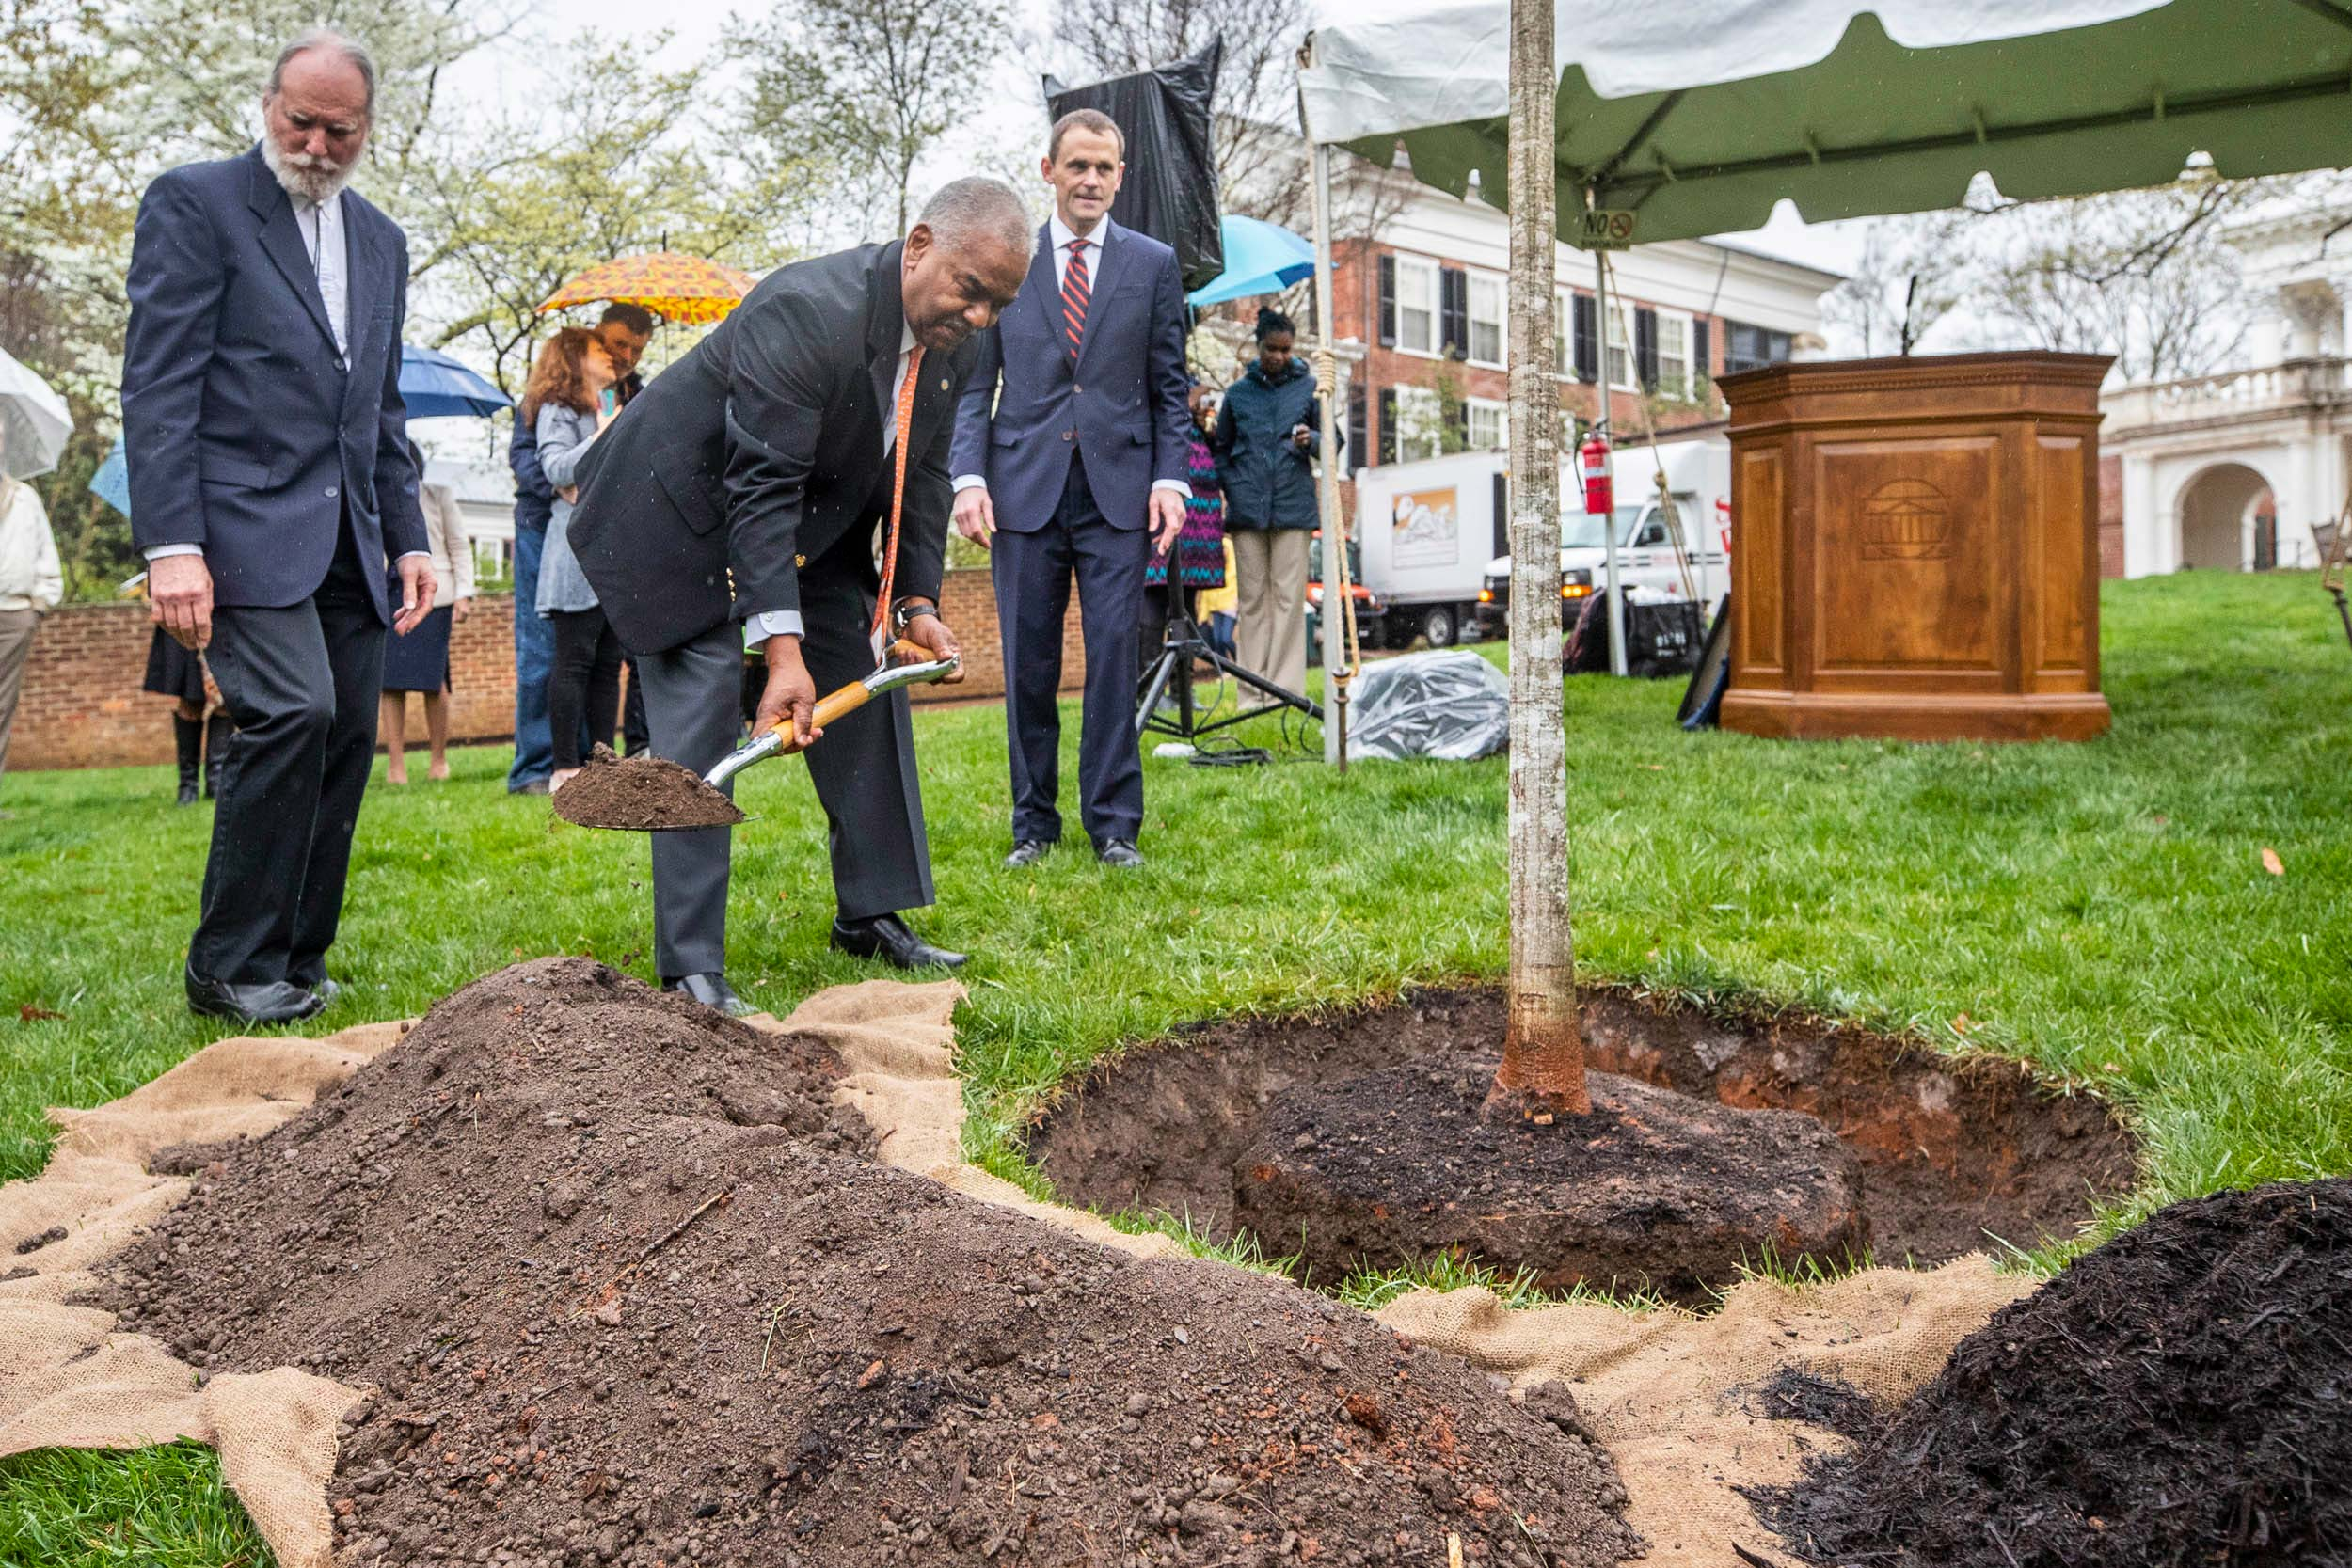 The annual UVA's Founders Day celebration included the tree-planting ceremony, this year in honor of Martin, with shovel. (Photo by Sanjay Suchak, University Communications)